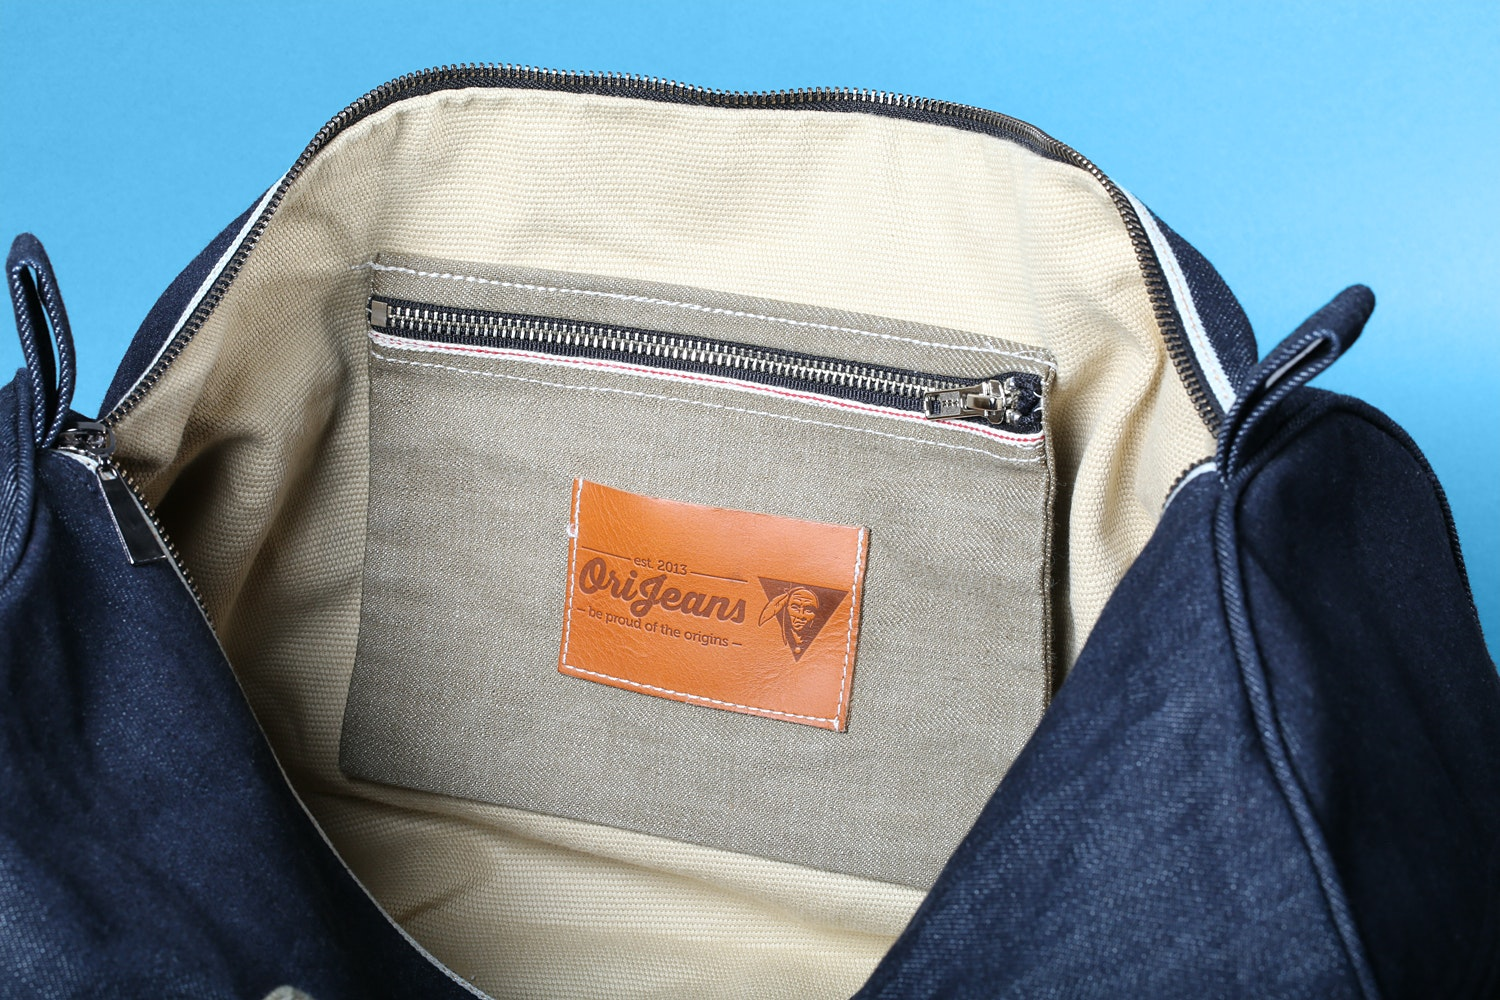 OriJeans Selvage Denim Duffel Bag